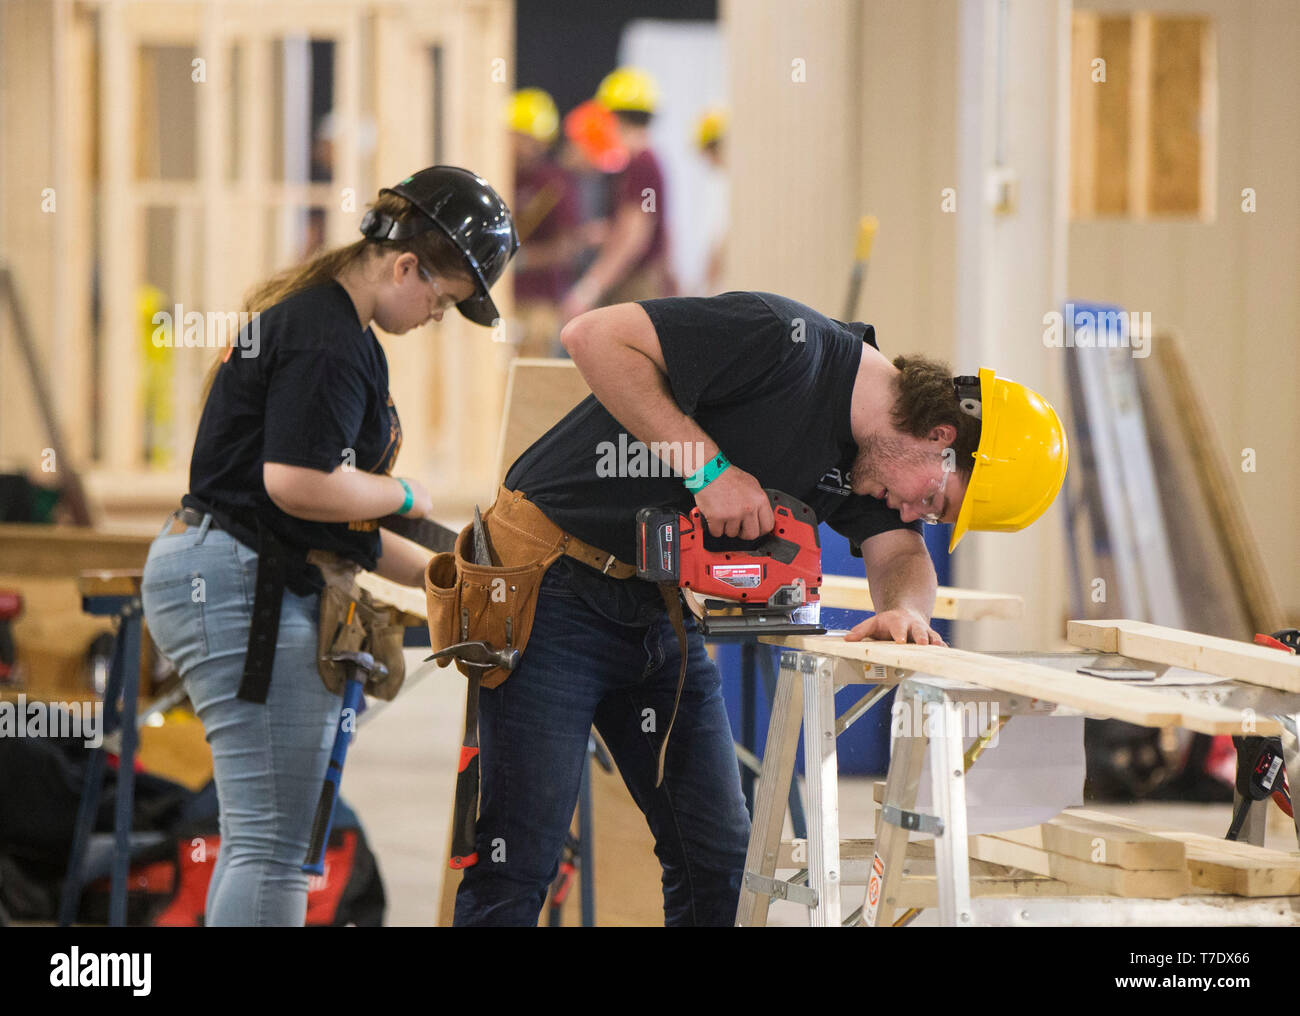 Toronto, Canada. 6th May, 2019. Students compete during the home building sector of the 2019 Skills Ontario Competition in Toronto, Canada, on May 6, 2019. The 2019 Skills Ontario Competition kicked off here on Monday, attracting more than 2,400 competitors. A broad range of skills and careers are represented at the three-day competition from across the manufacturing, transportation, construction, service, and technology sectors. Credit: Zou Zheng/Xinhua/Alamy Live News - Stock Image